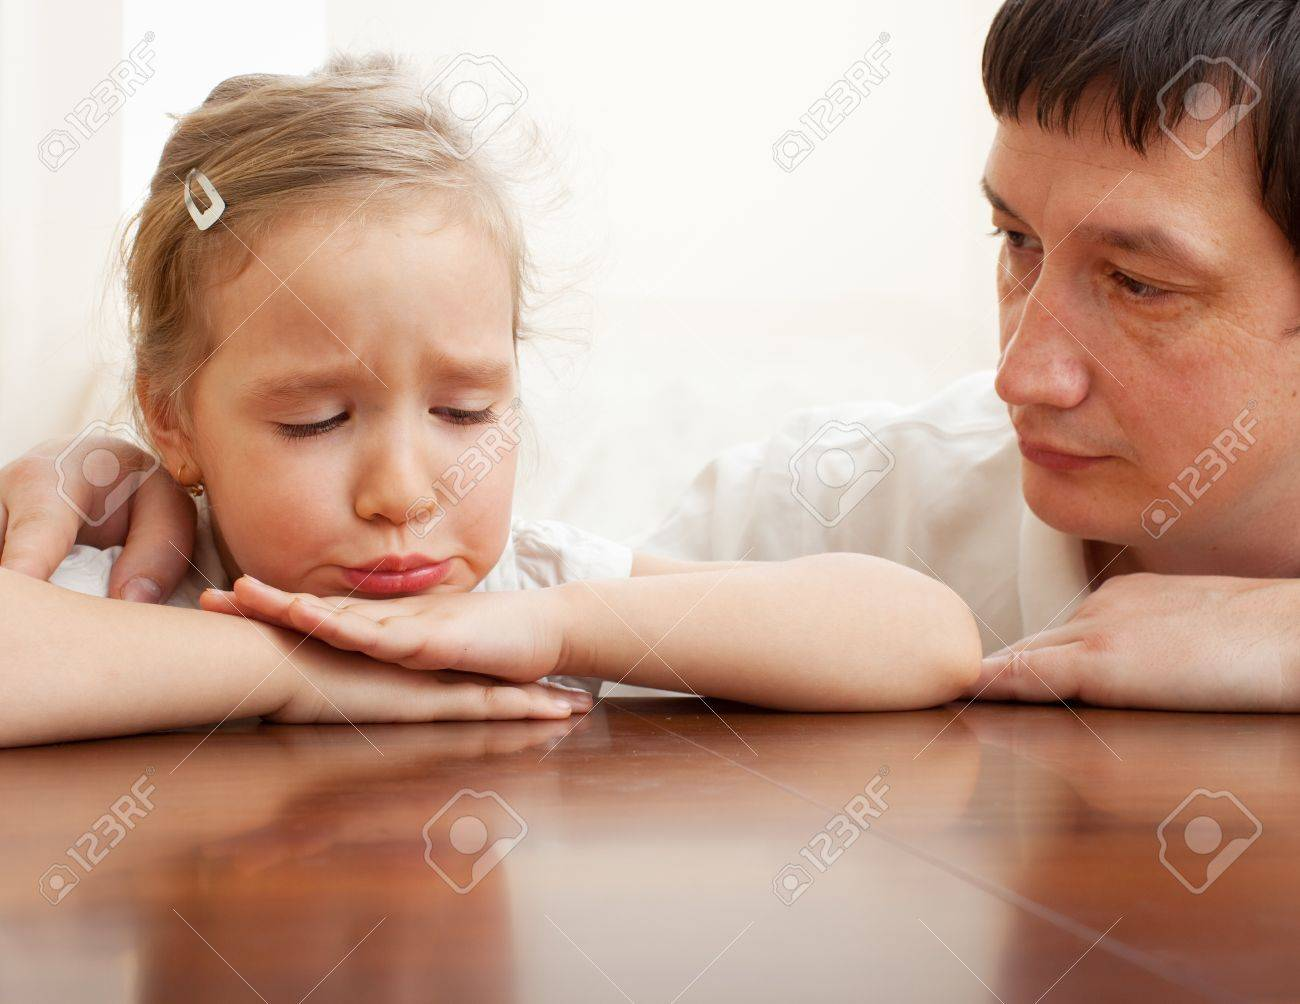 Father comforts a sad child. Problems in the family Stock Photo - 12940340